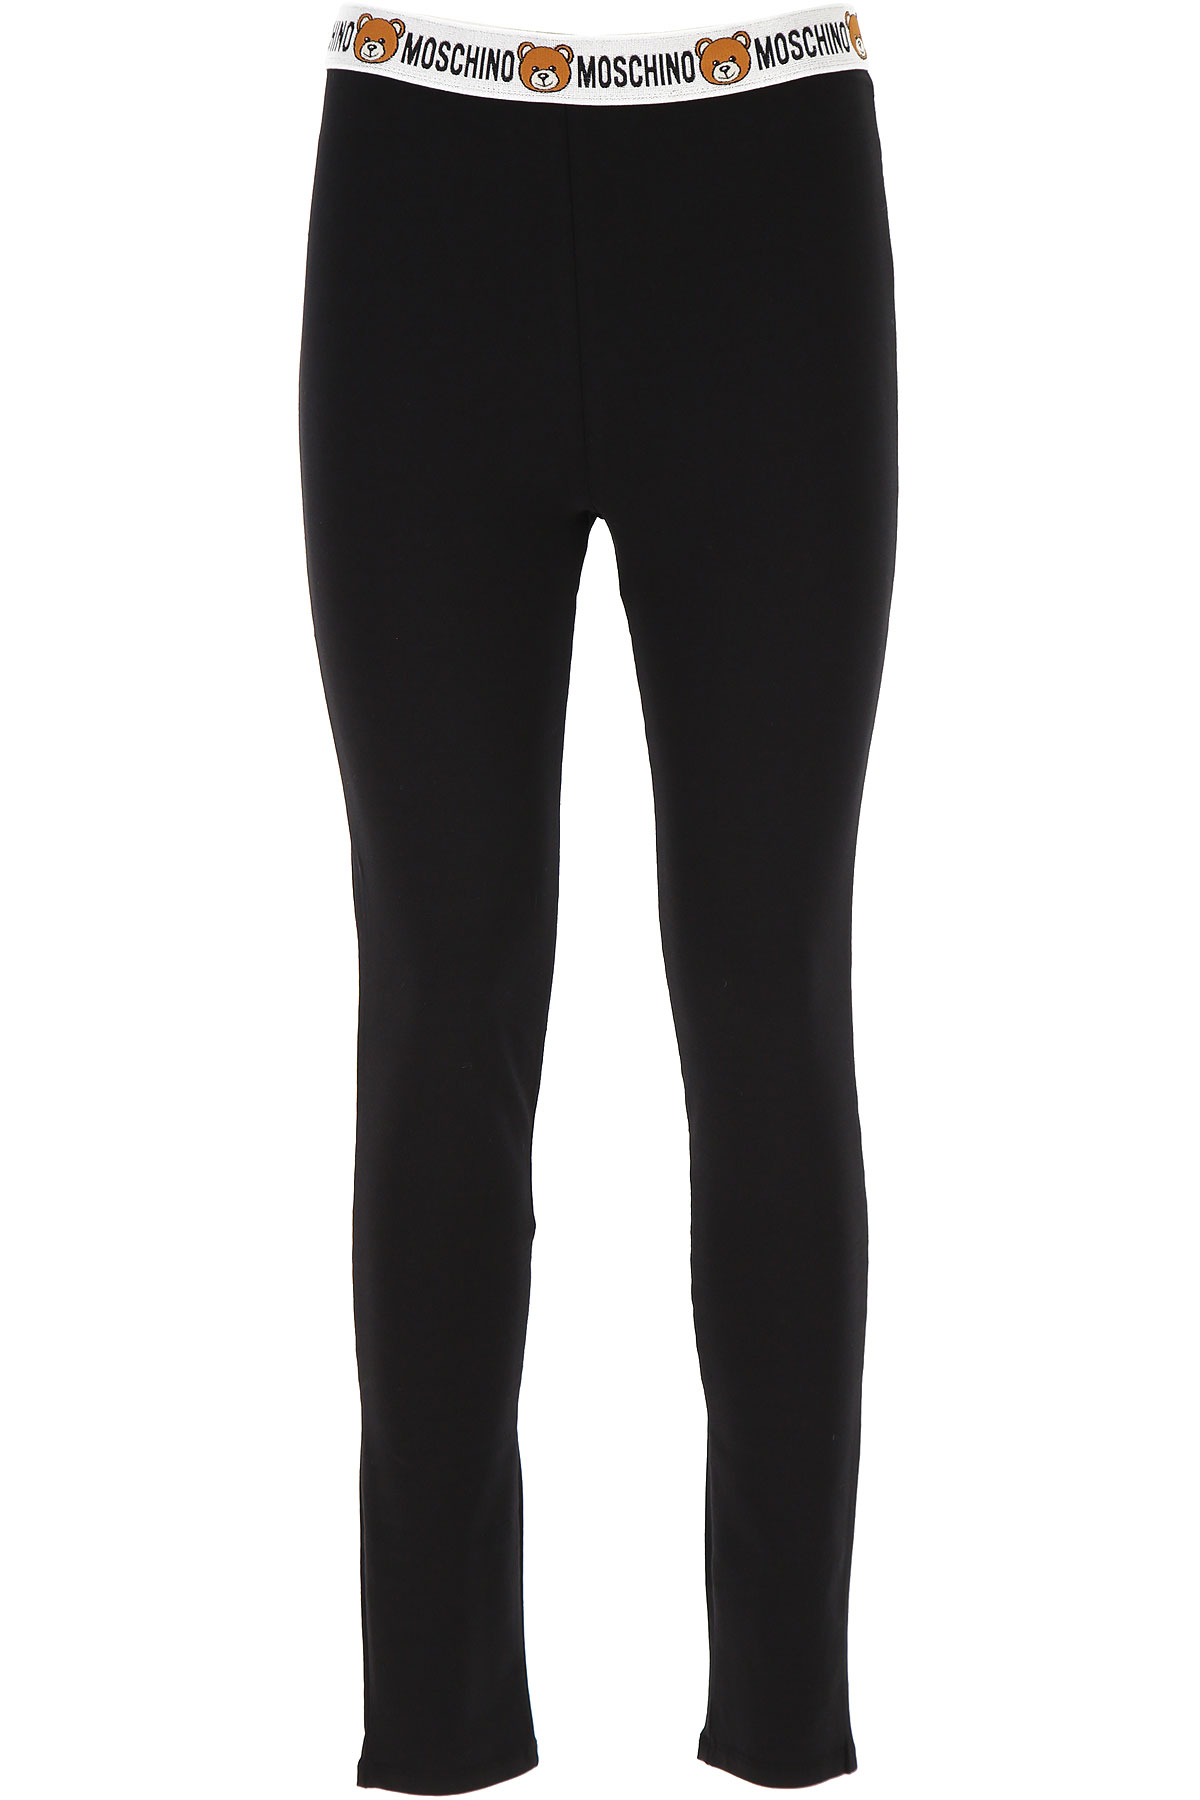 Moschino Women's Sportswear for Gym Workouts and Running On Sale, Black, Cotton, 2019, 4 6